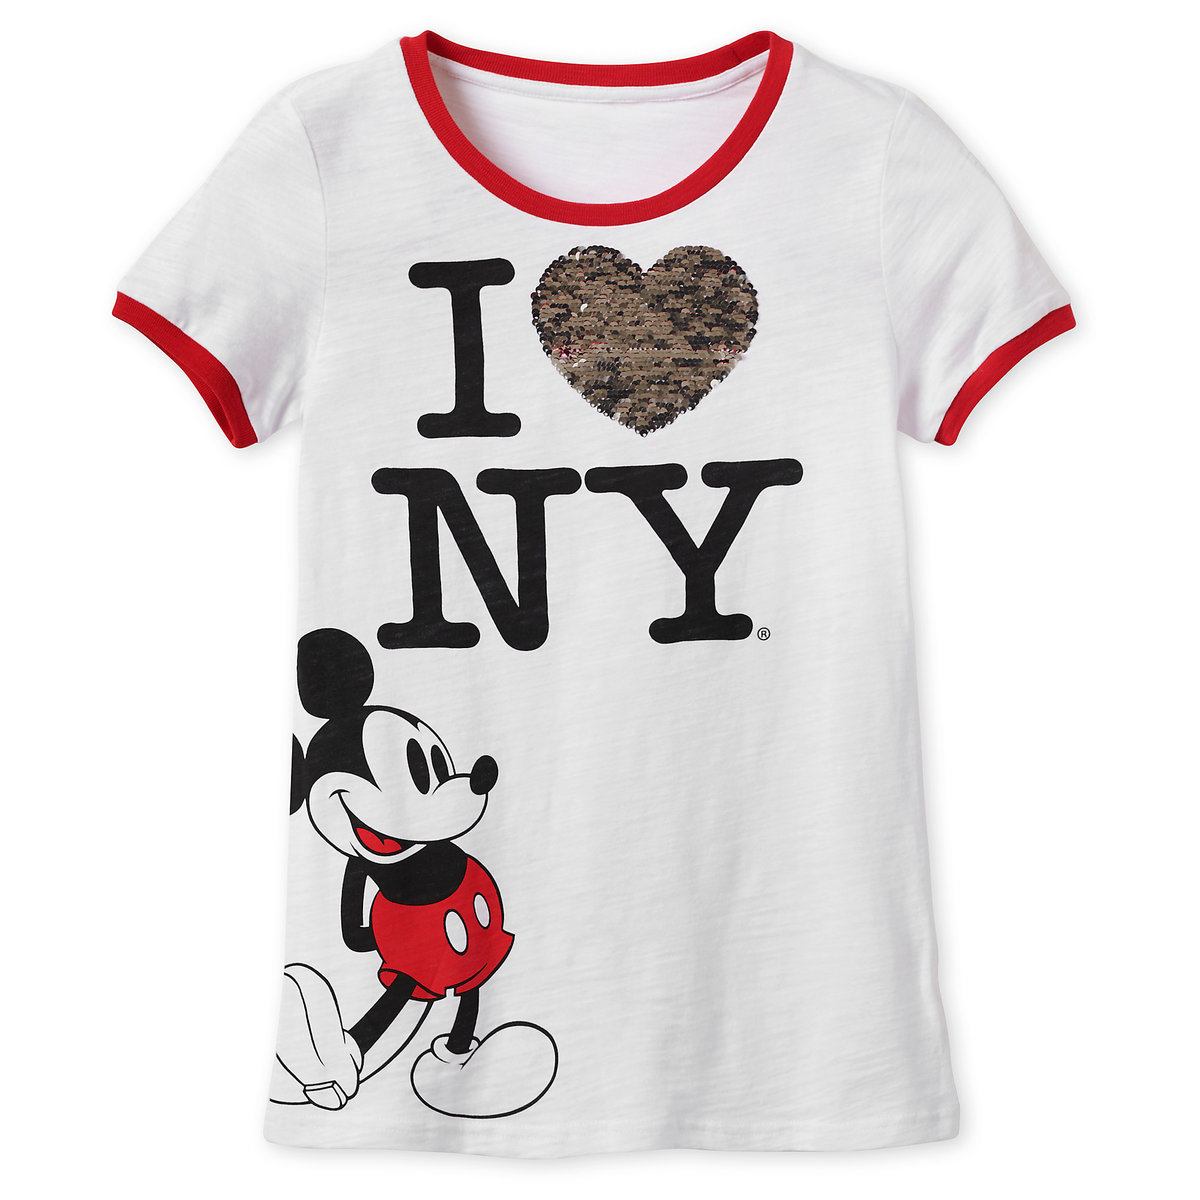 57d530bf2ca8 Product Image of Mickey Mouse Reversible Sequin T-Shirt for Women - New  York City